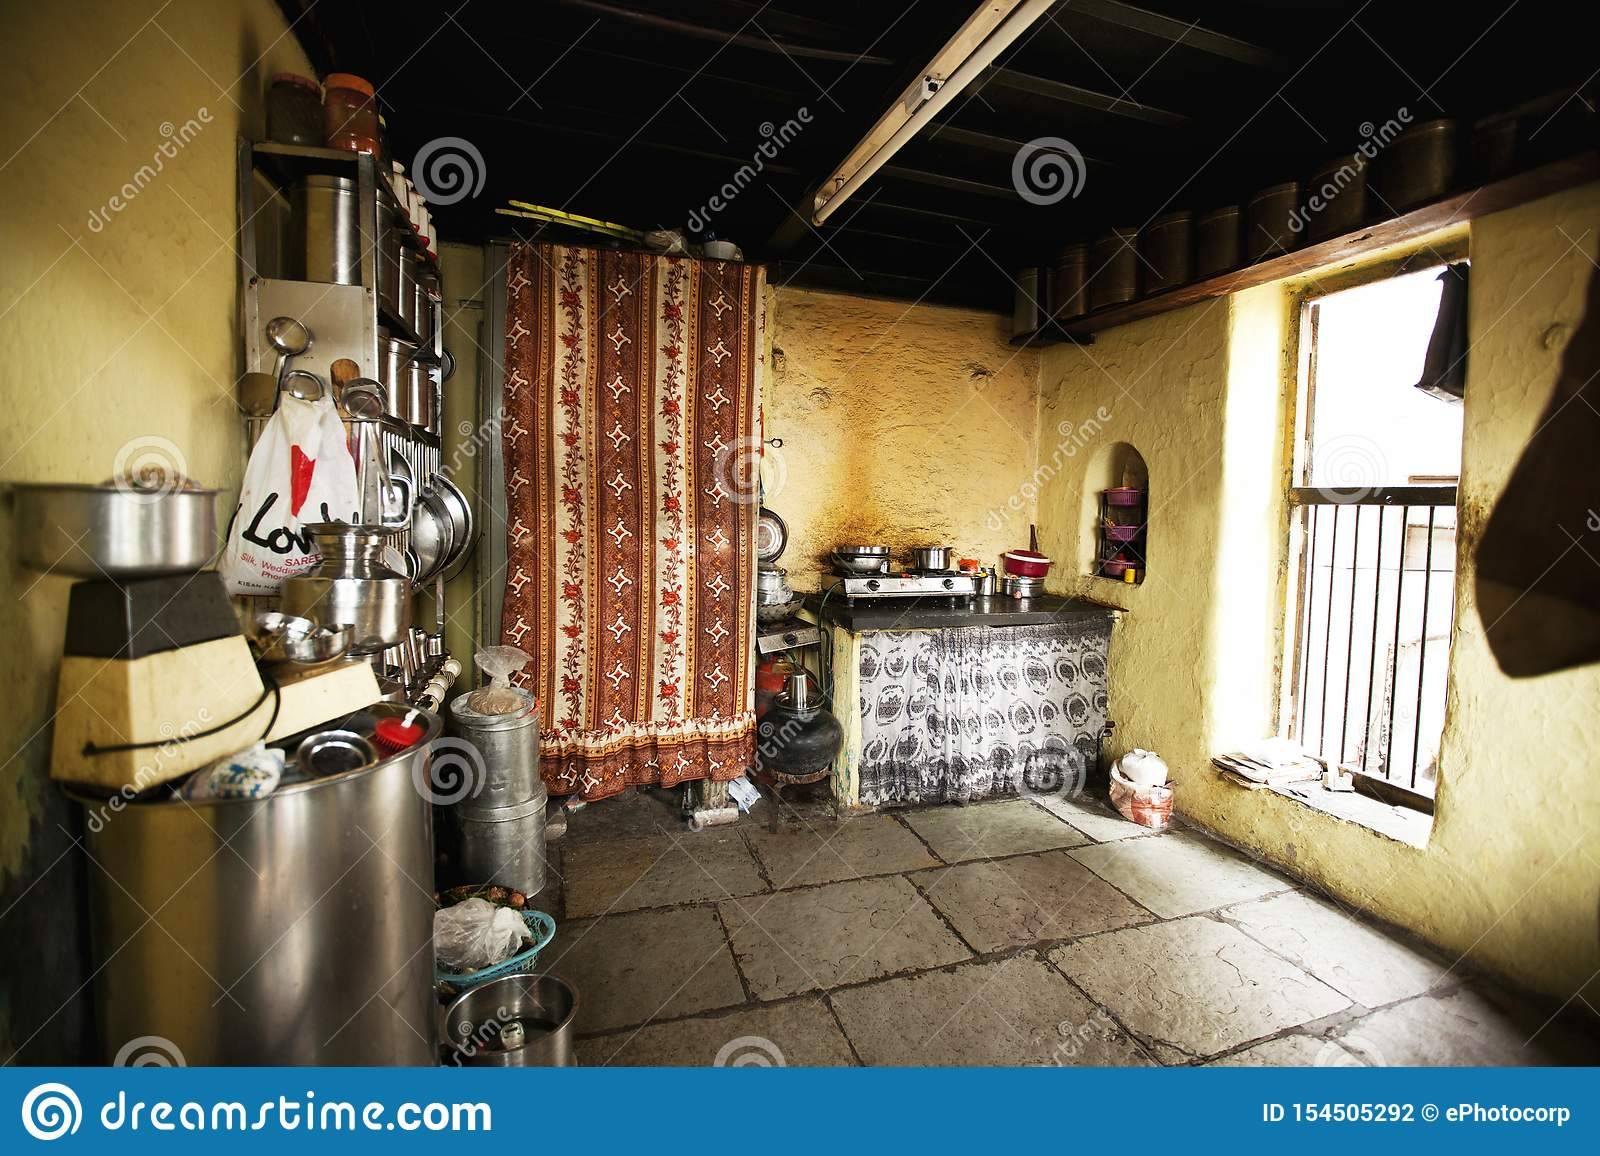 Kitchen interior at old building in Wadas of Pune, India